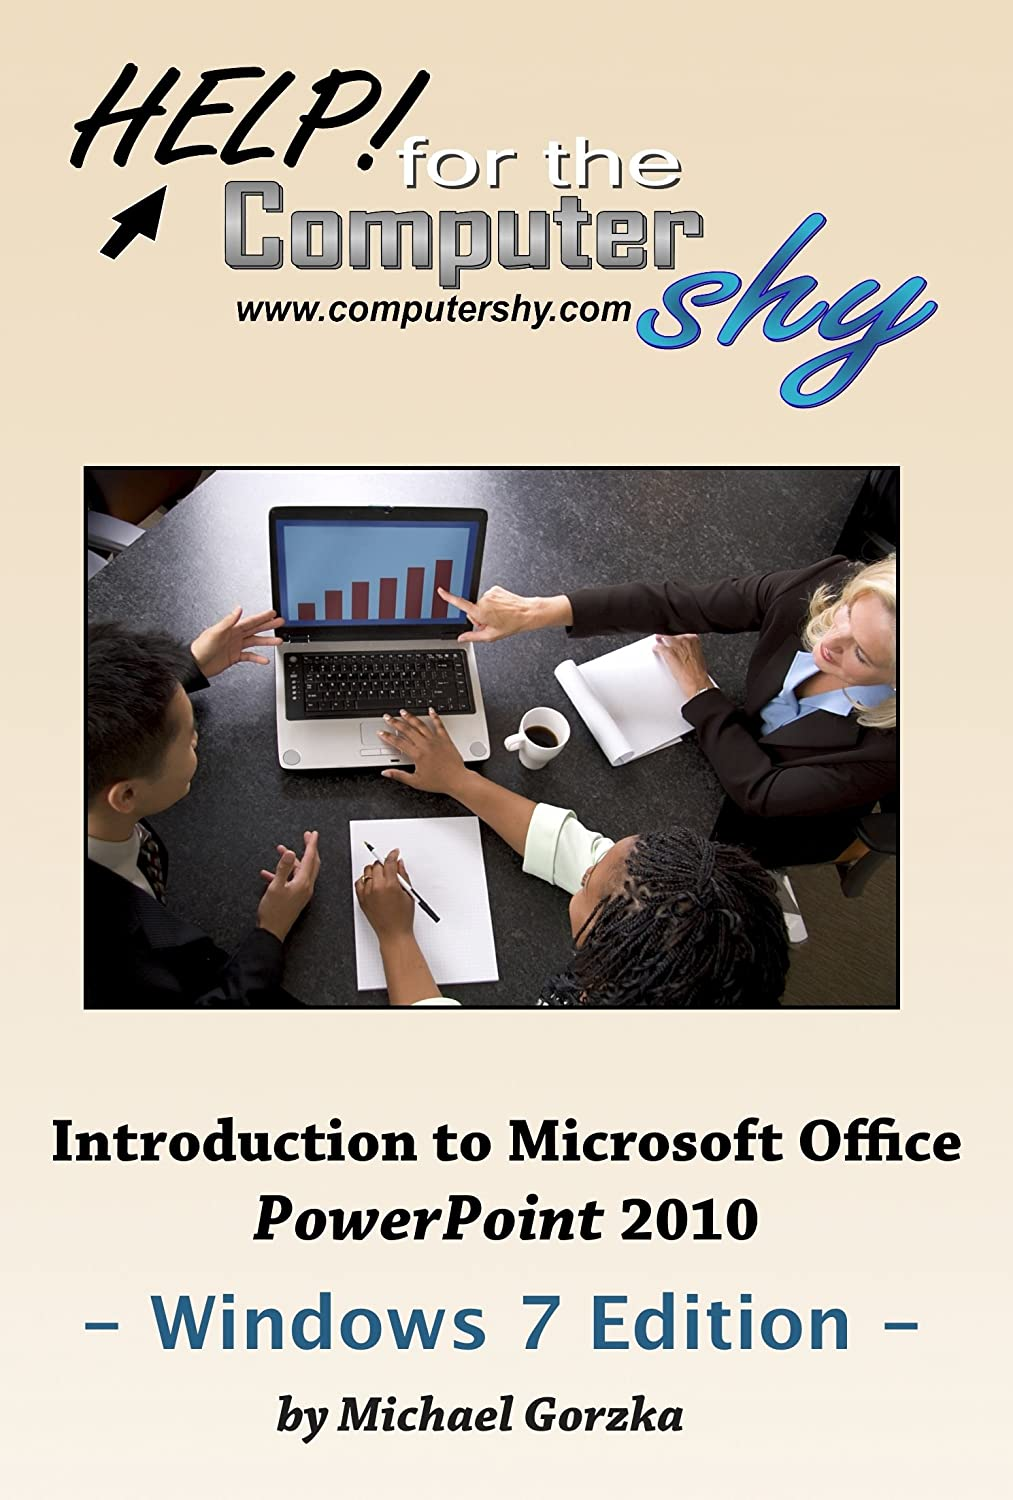 Introduction to Microsoft Office PowerPoint 2010 - Windows 7 Edition